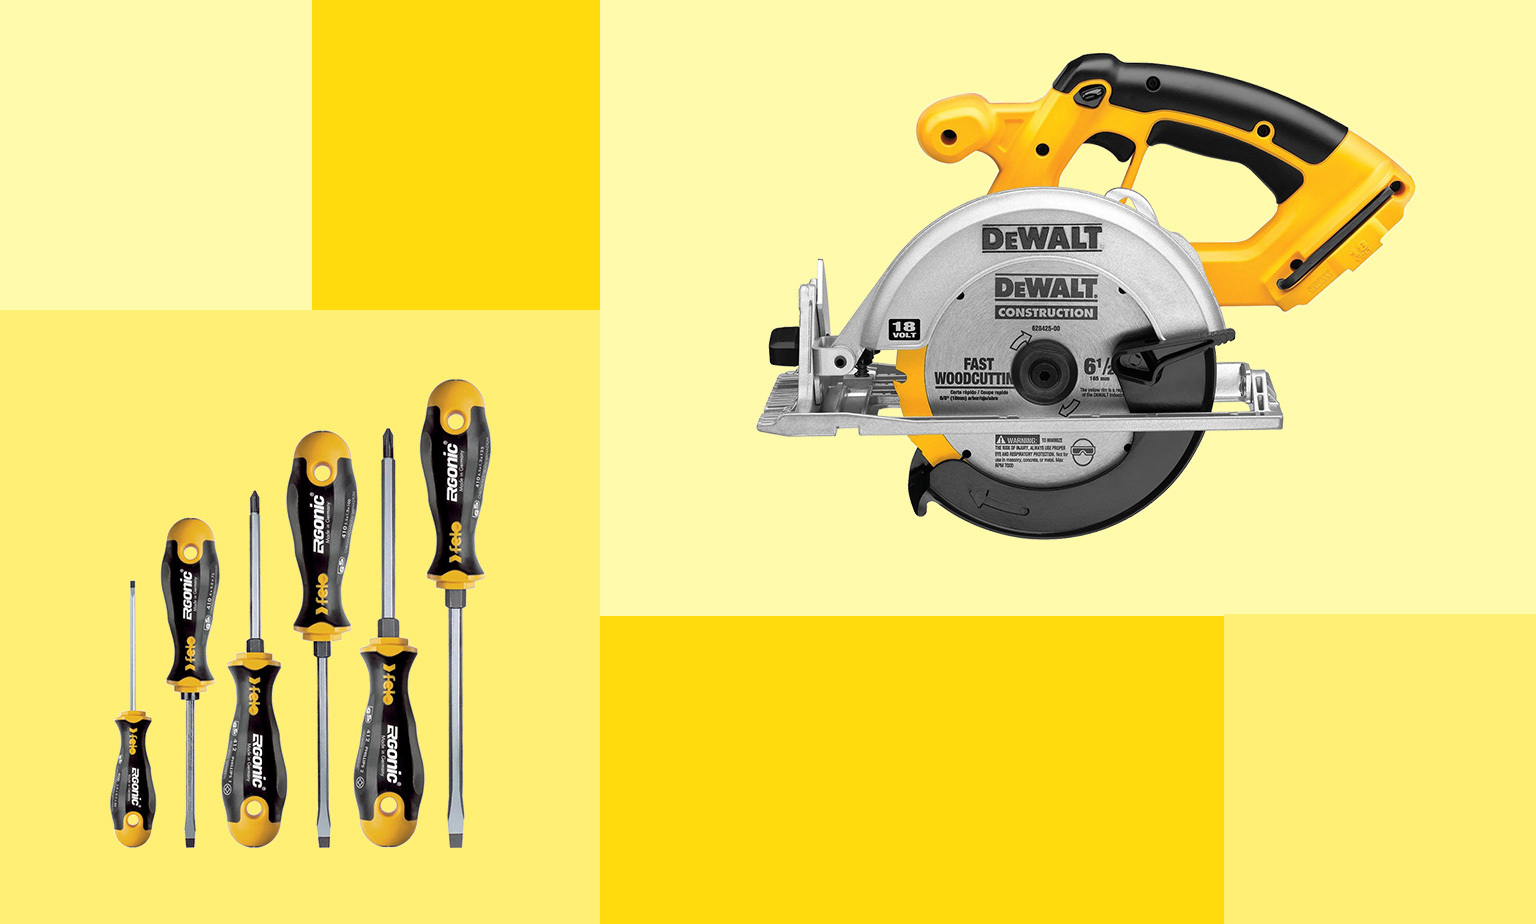 DIY with DEWALT